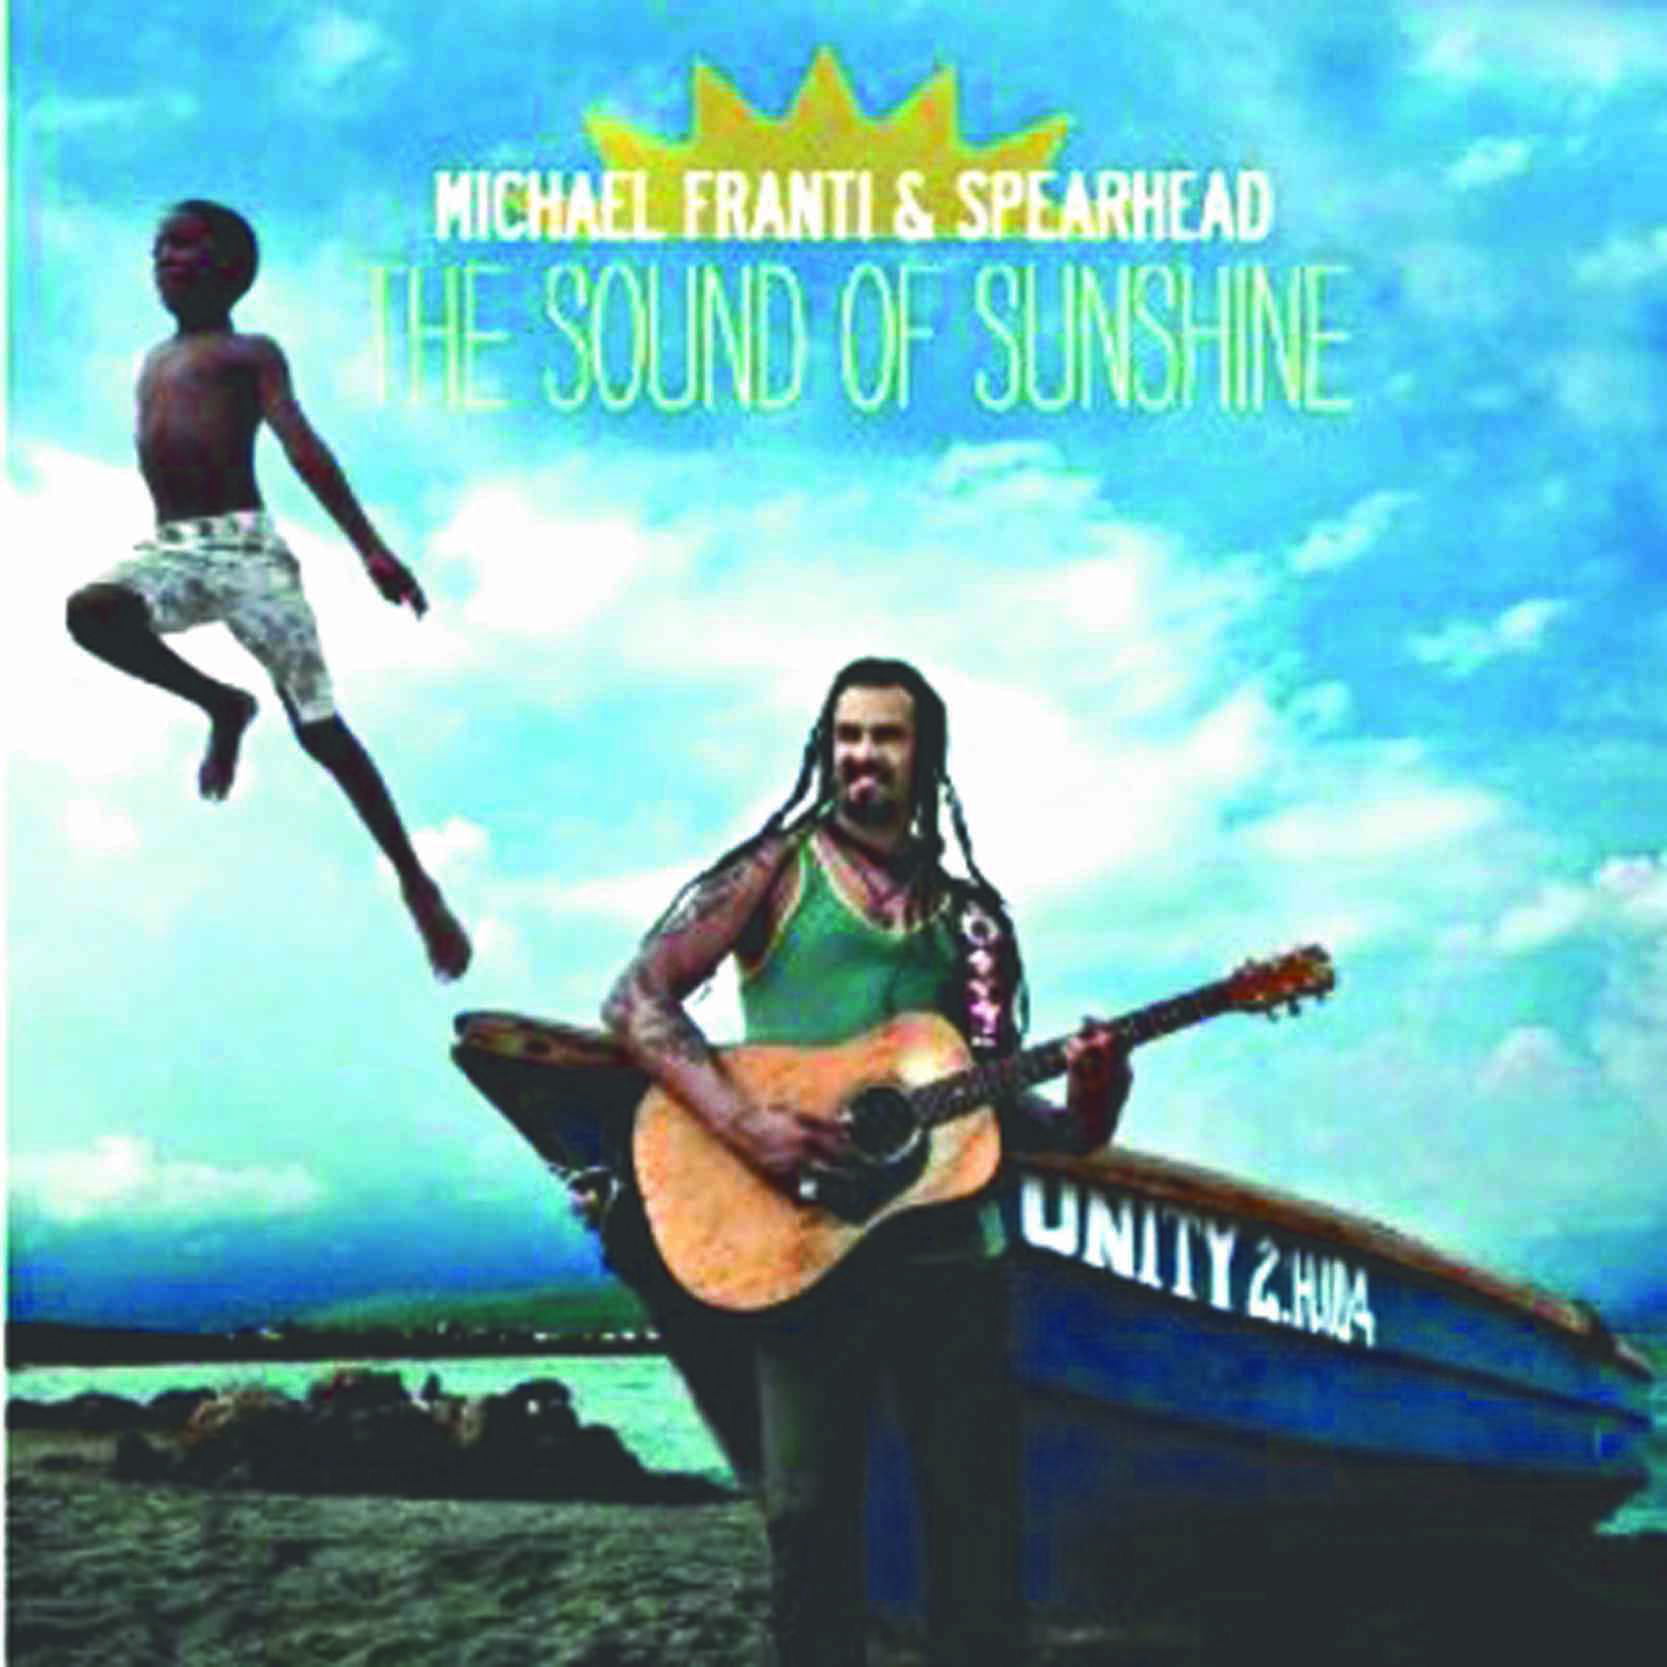 Michael-Franti-and-Spearhead-The-Sound-of-Sunshine_event_main.jpg